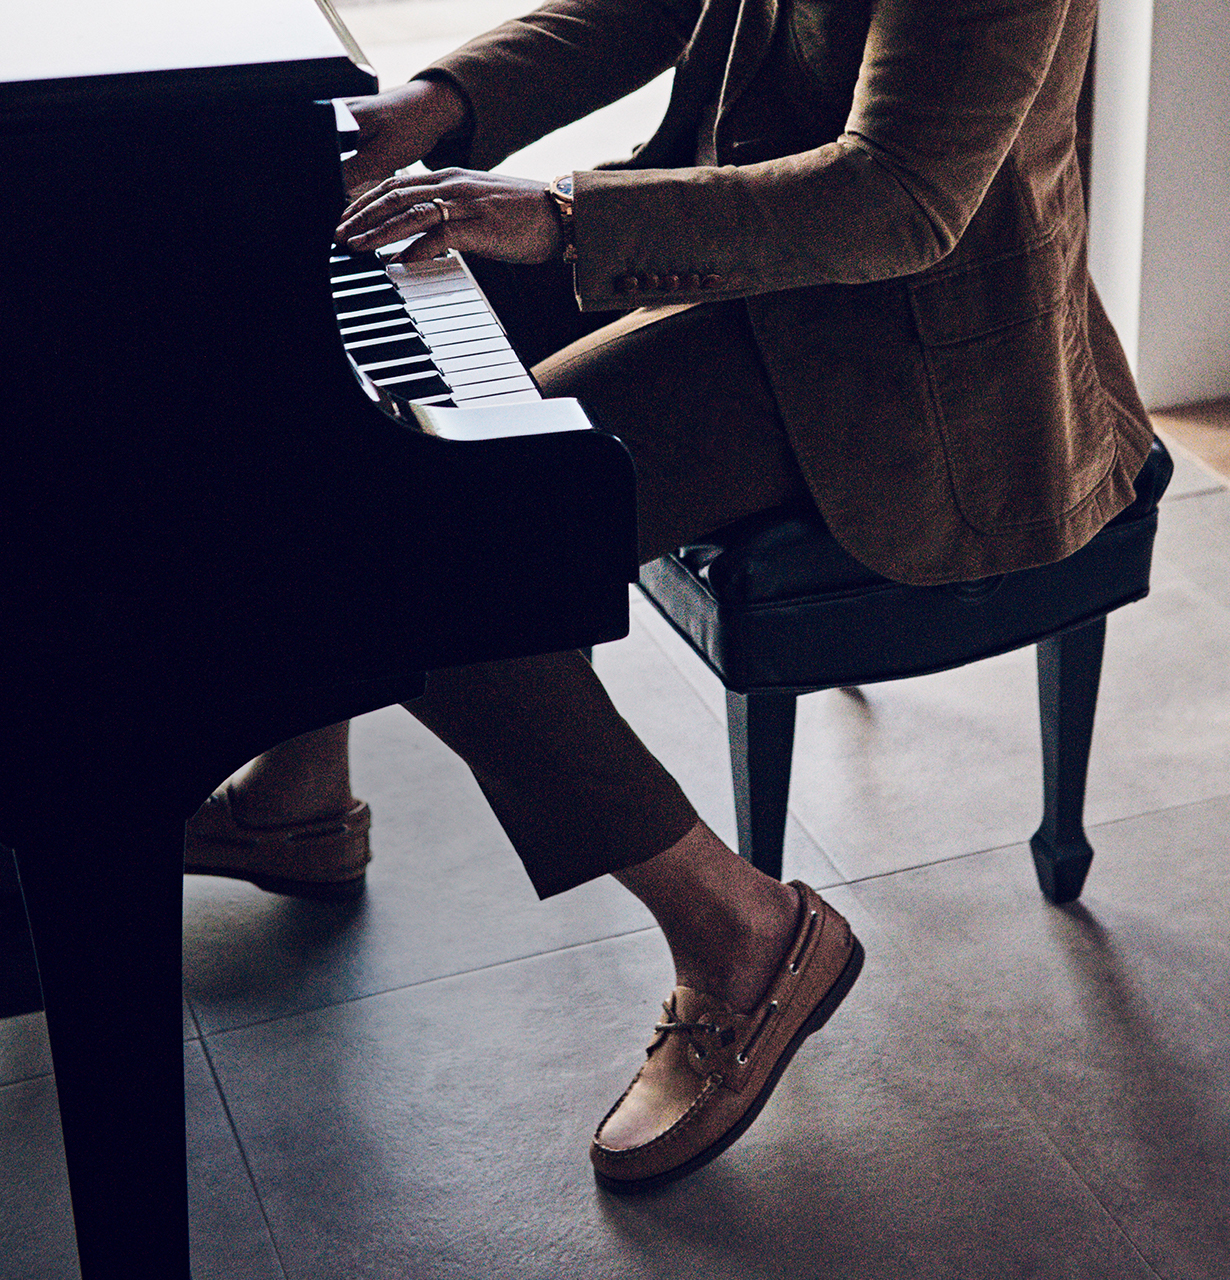 John Legend sitting on a piano bench, wearing Sperry Boat Shoes.